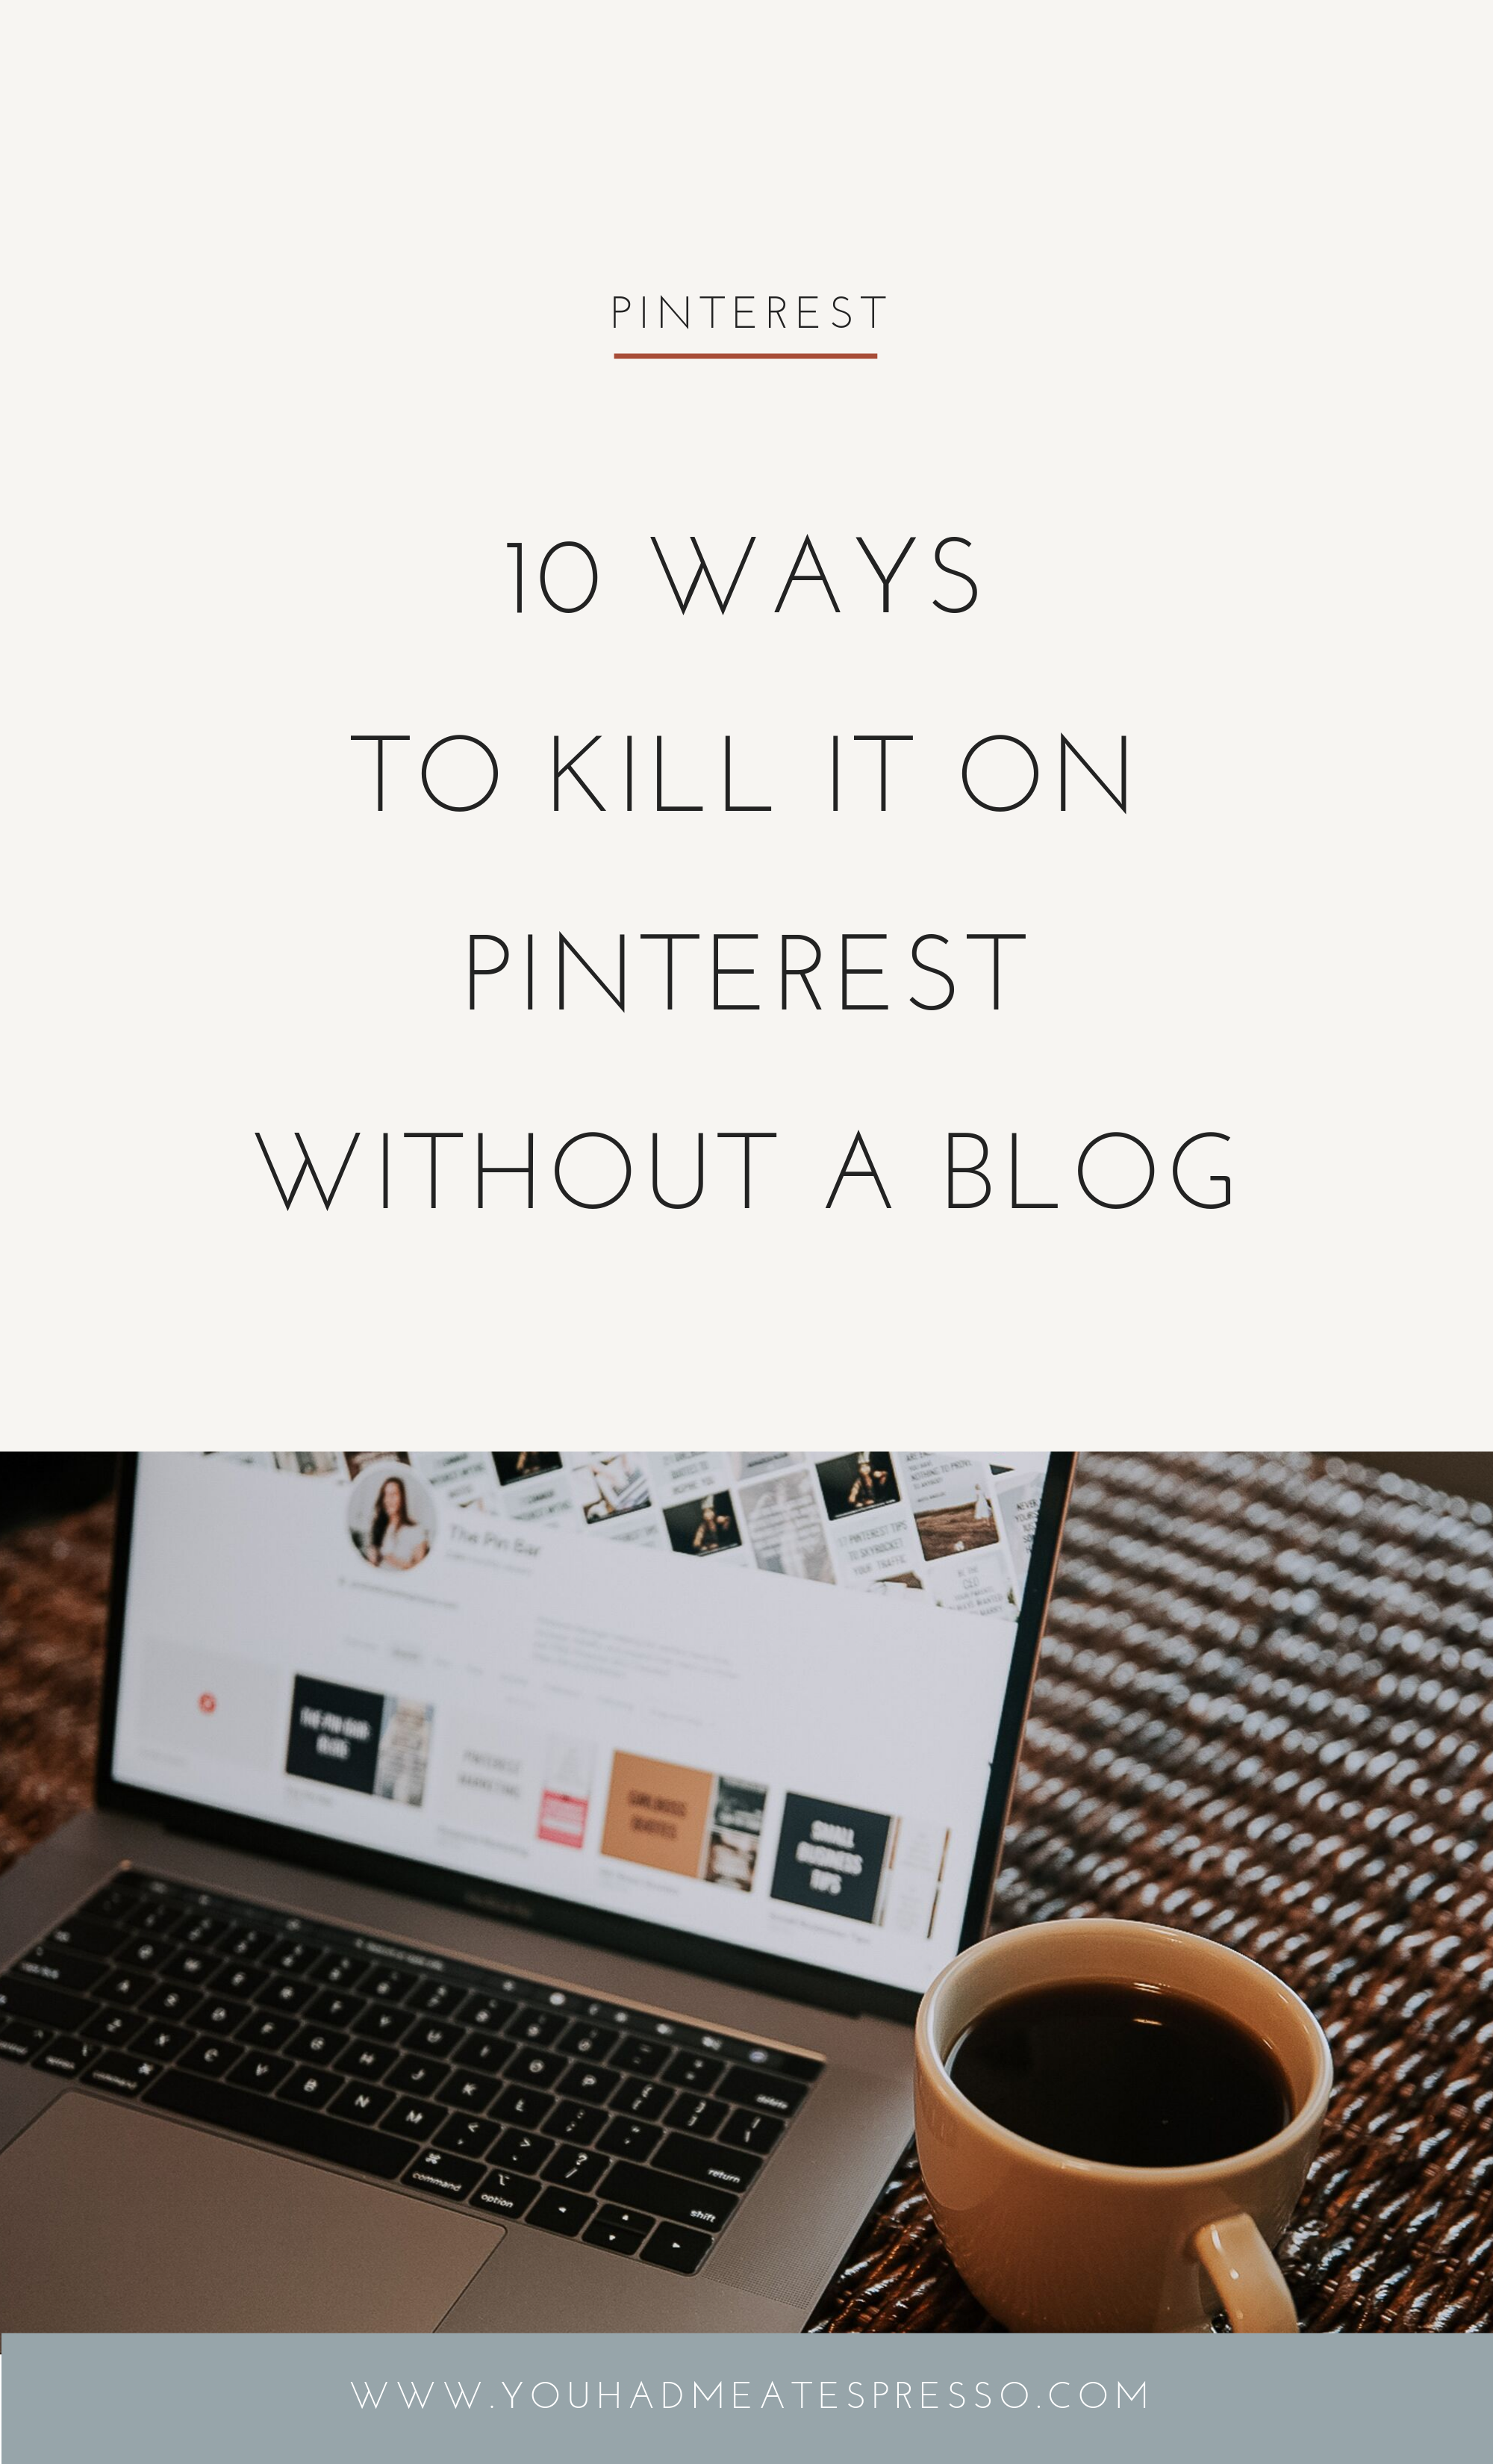 10 ways to kill it on pinterest without a blog 1.png